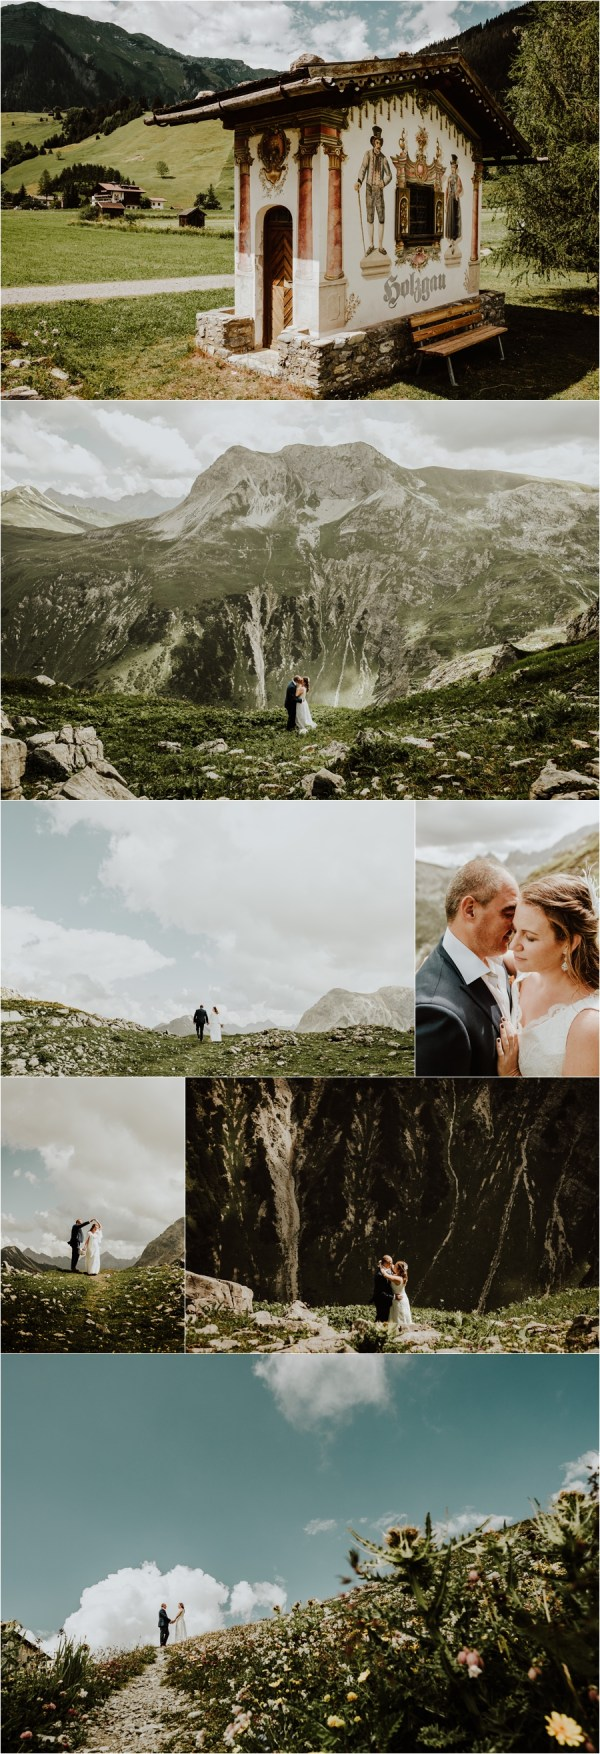 After wedding shoot in the Lech mountains in Austria by Wild Connections Photography